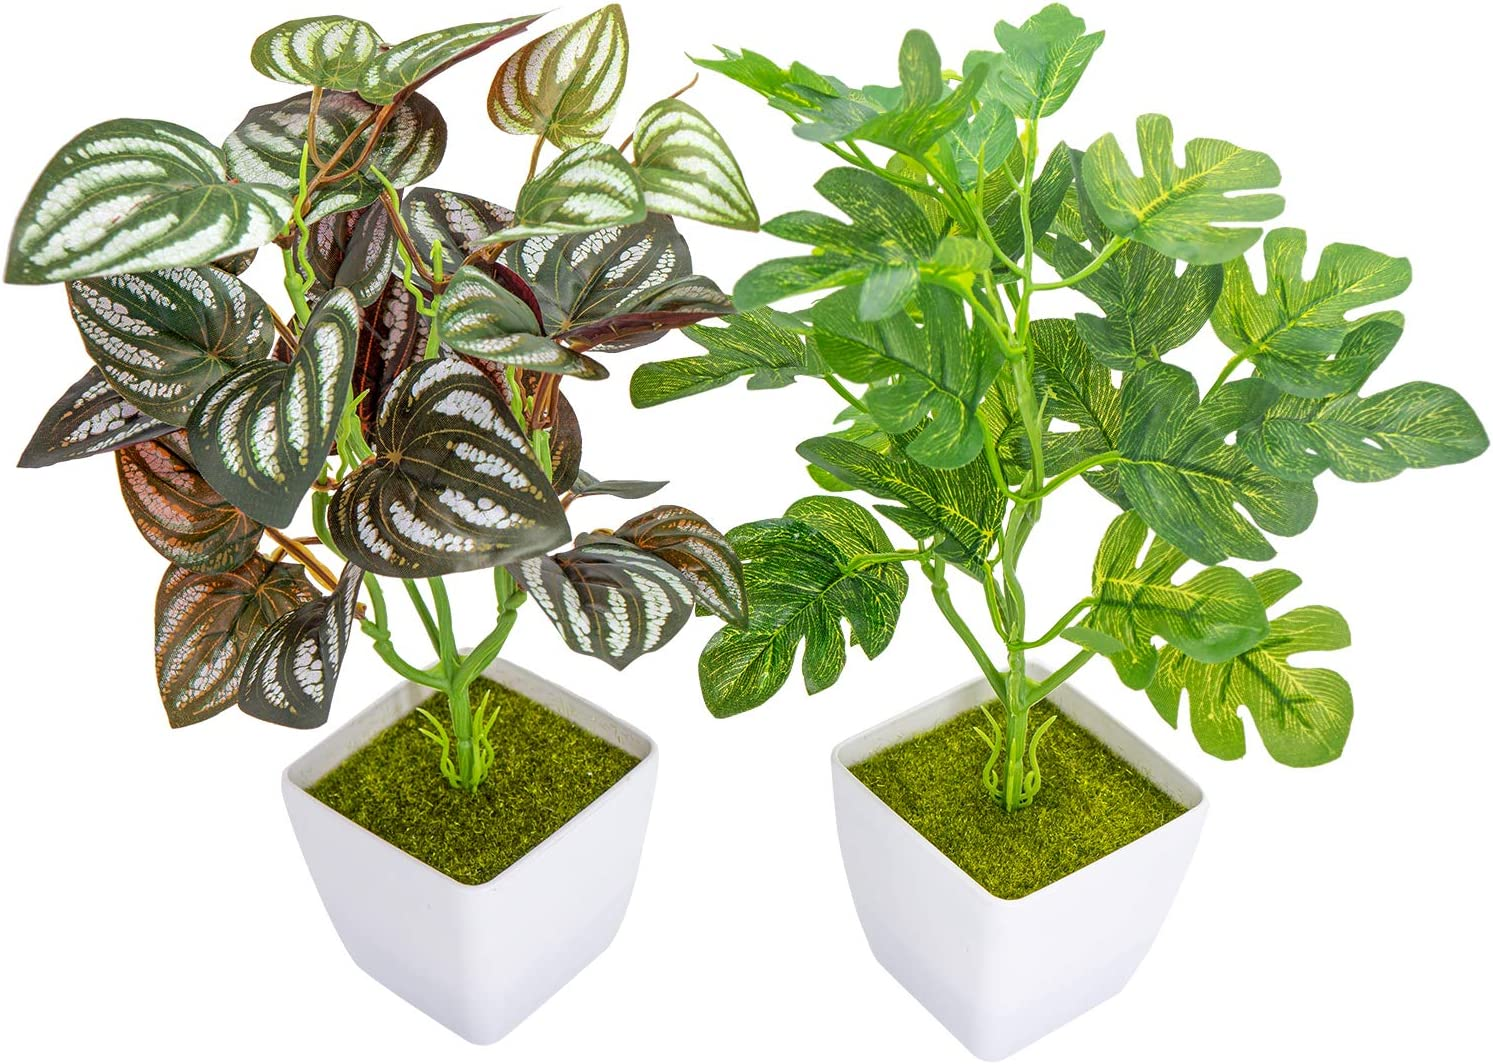 YOLETO 2 Pack Artificial Plants in Pots for Home Decor Indoor Aesthetic, Fall Décor Faux Fake Plant for Desk and Shelf in Bathroom / Bedroom / Living Room / Farmhouse Christmas Decorations